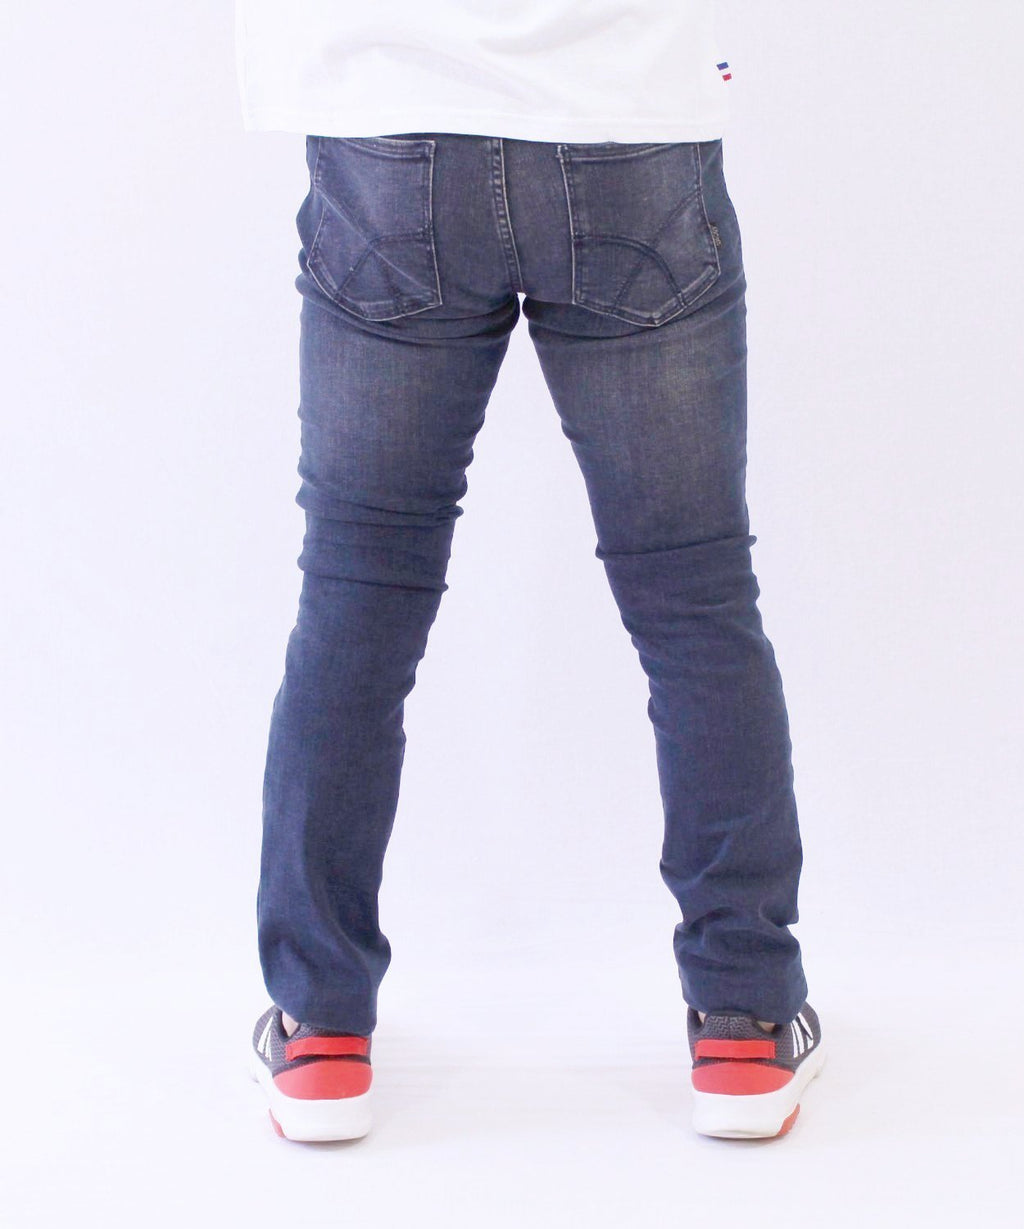 Riders By Lee - R1 Skinny Jeans -  Washed Back Indigo